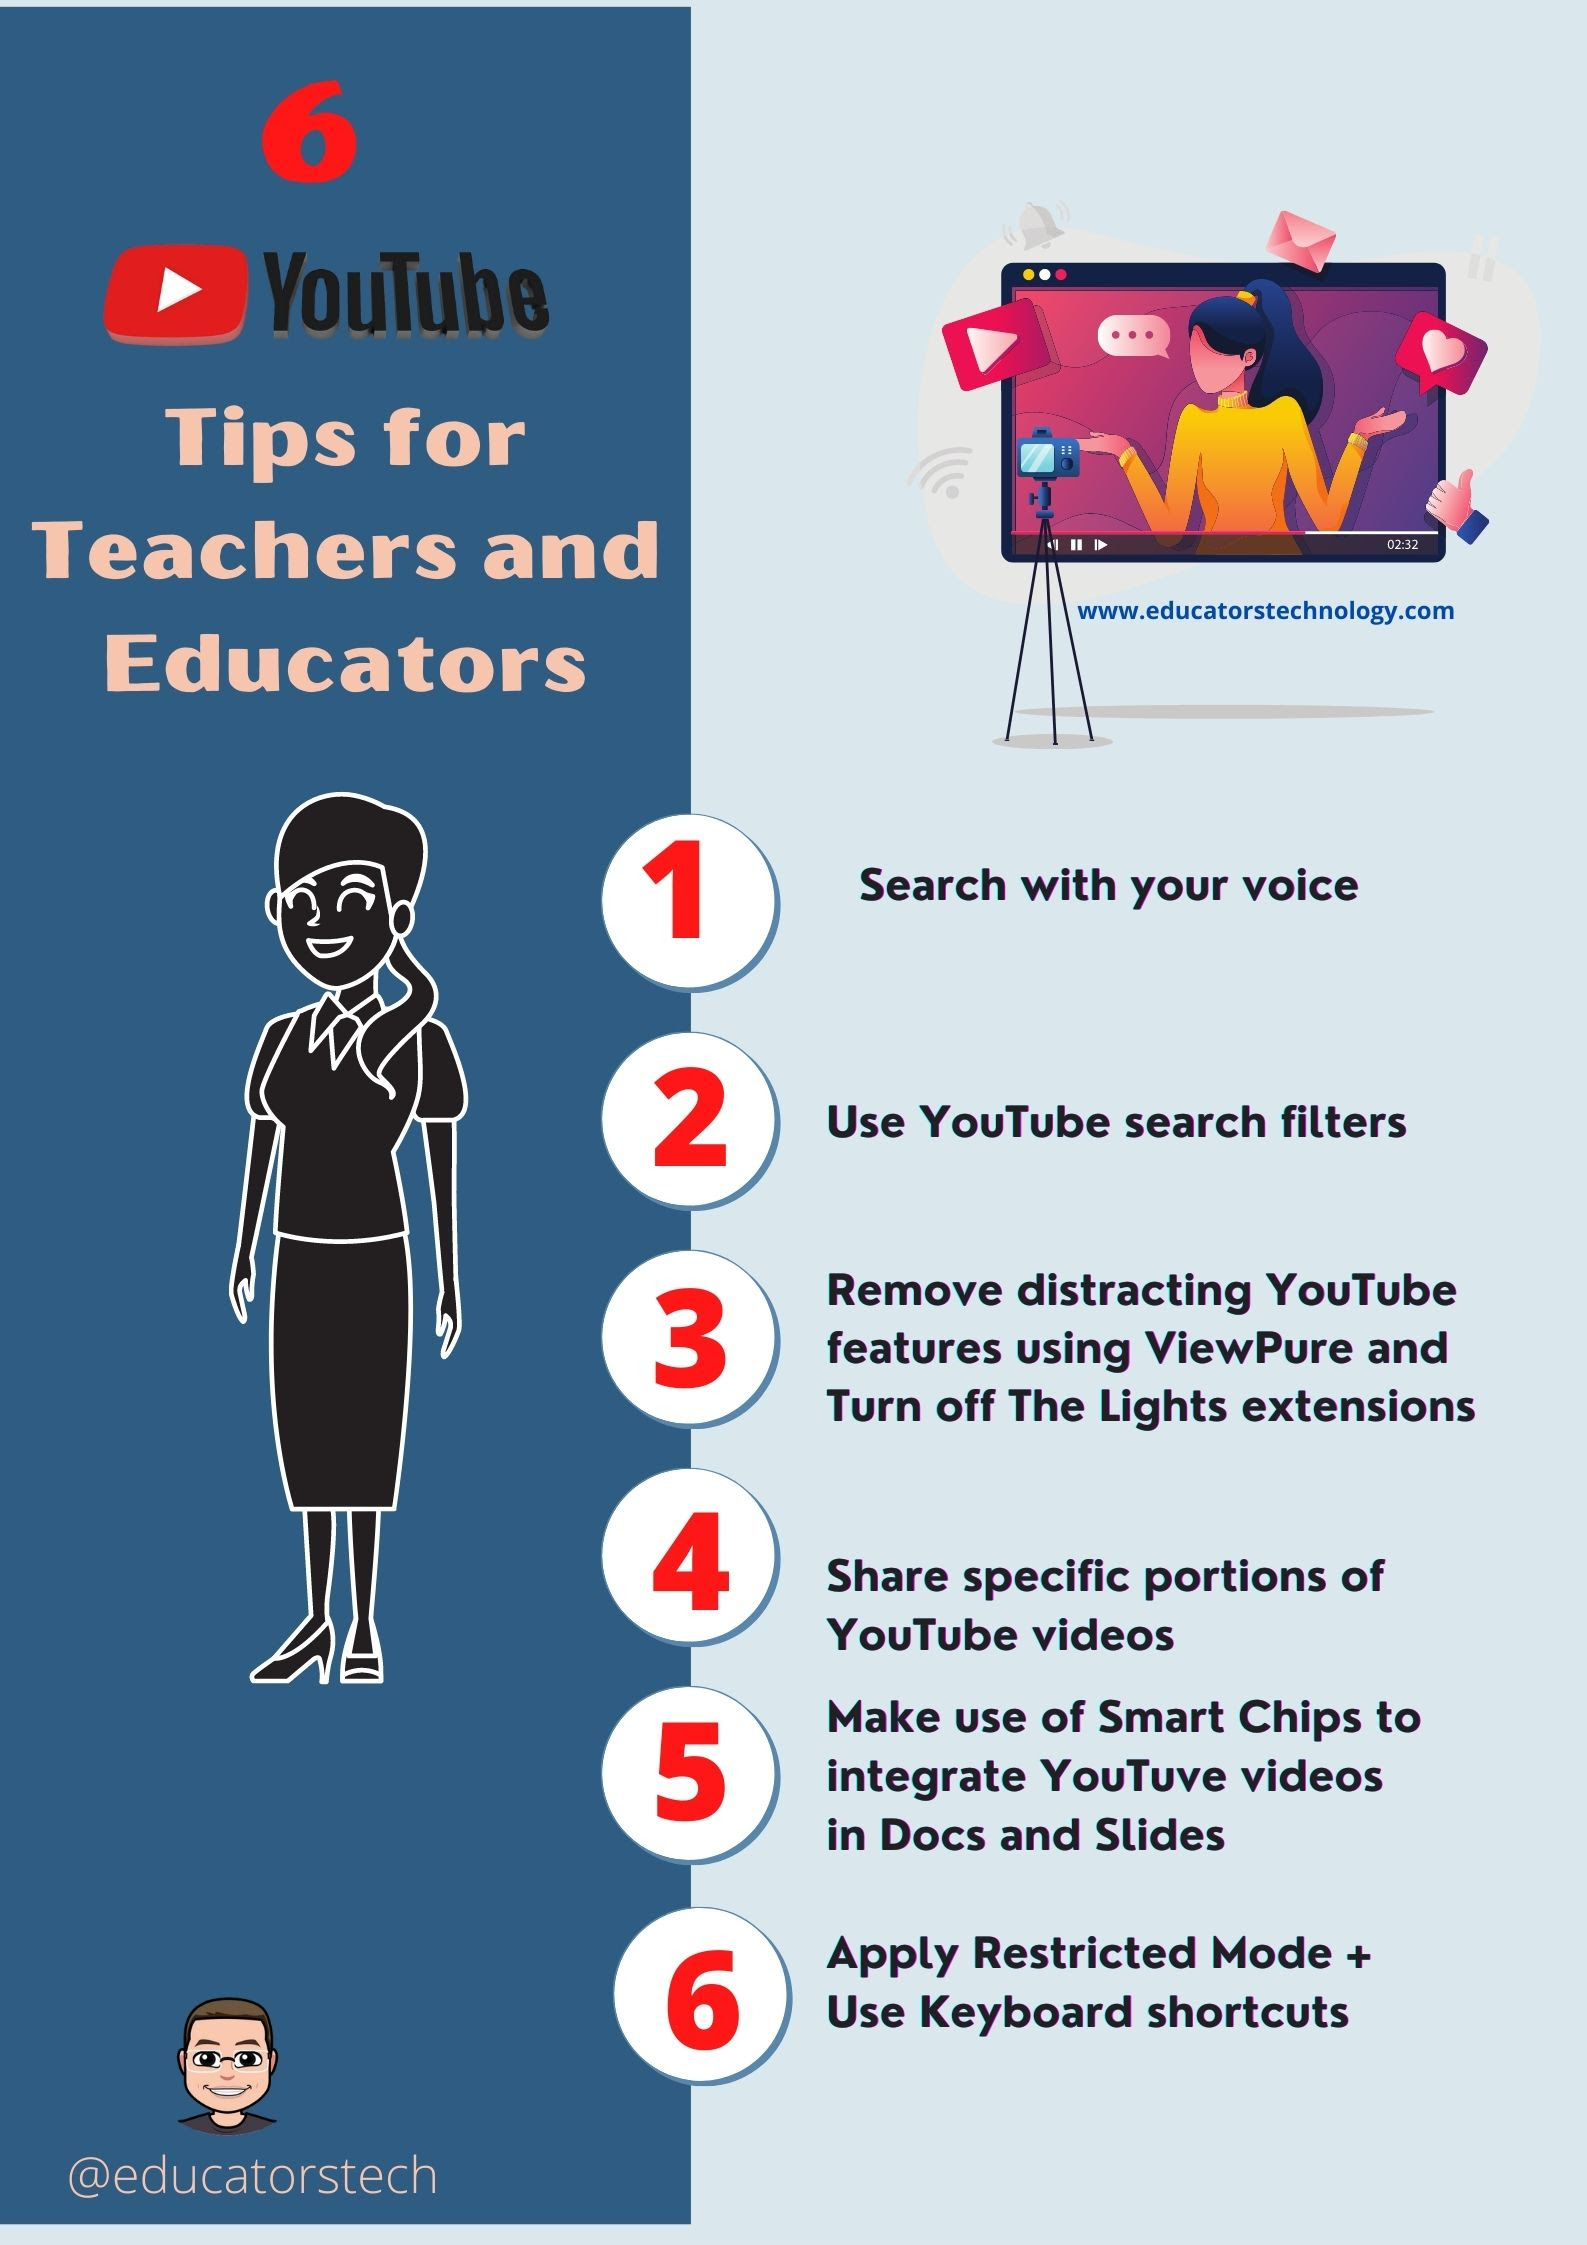 Tips to Help You Turn YouTube Into A Pedagogical Tool to Use in Your Teaching